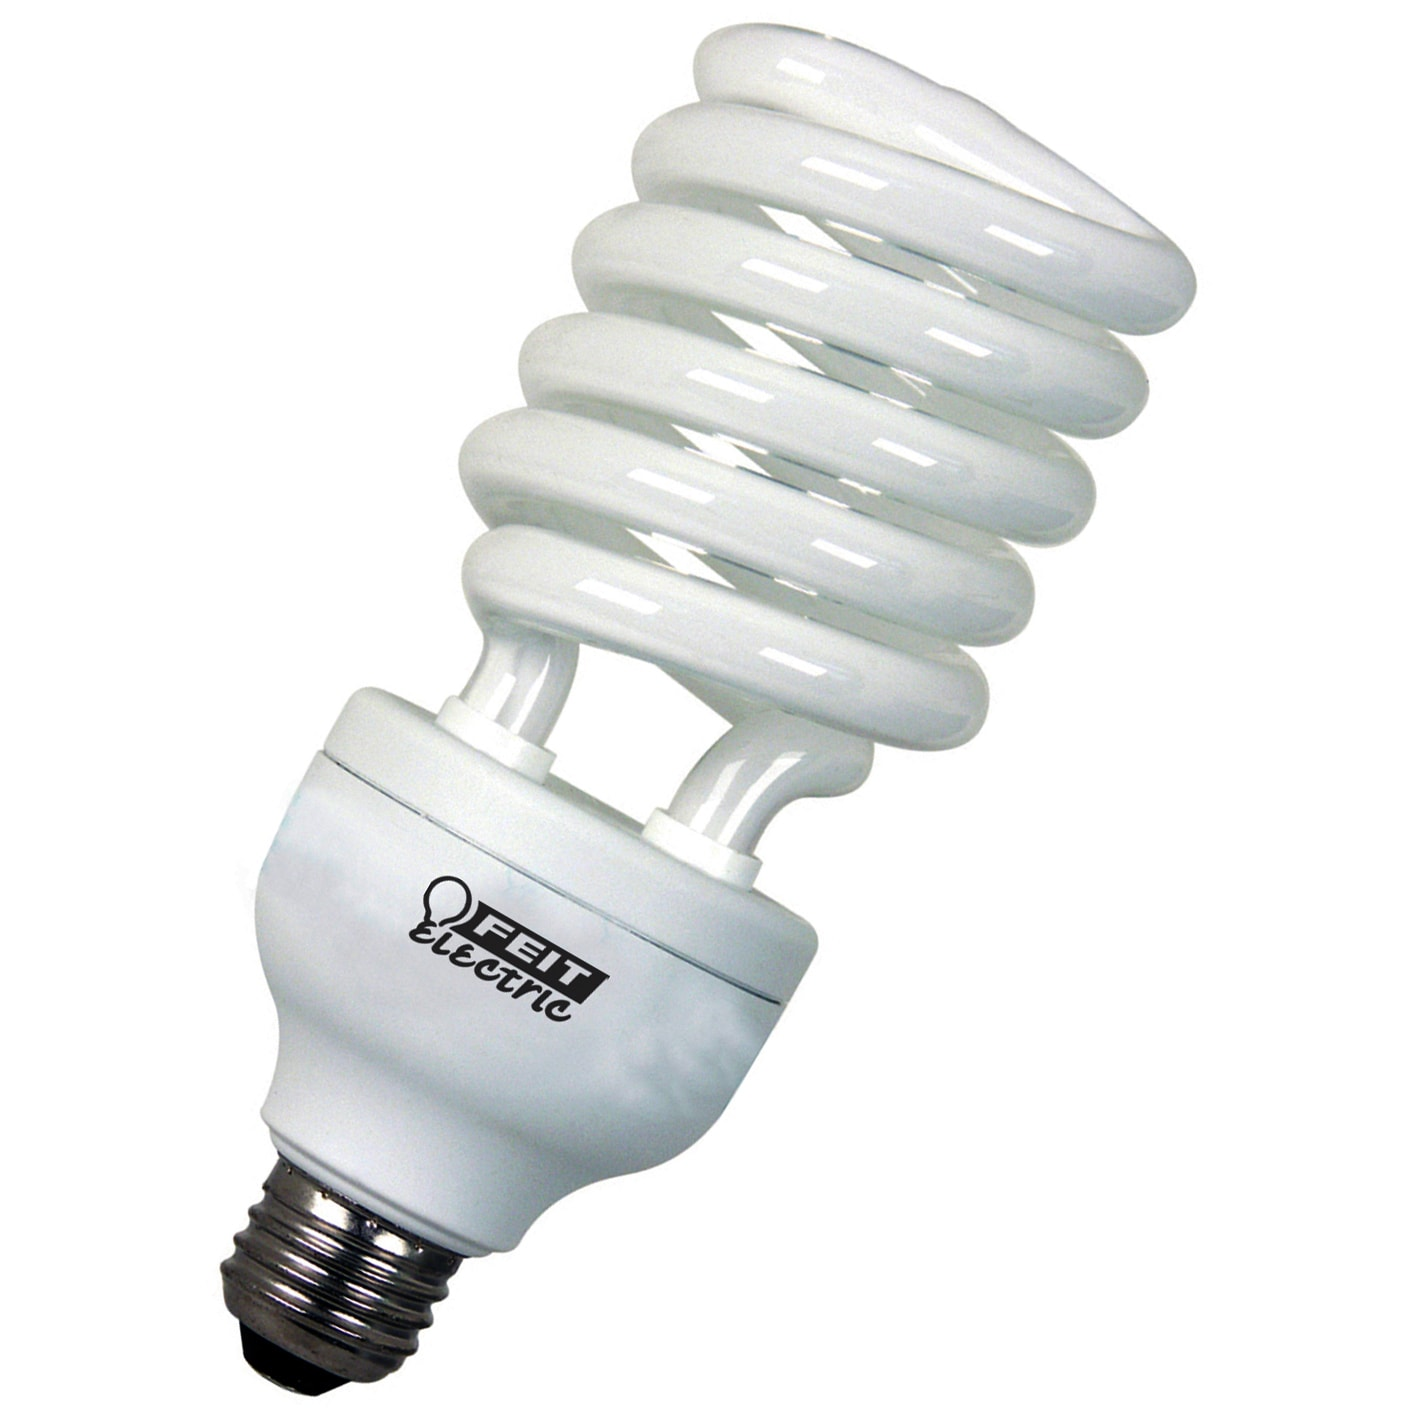 Gu24 Bulb Walmart Viewenlarge Ge Cfl Reveal Spiral 26wt 6 Bulbs 3 Packs 4 In Glossy White